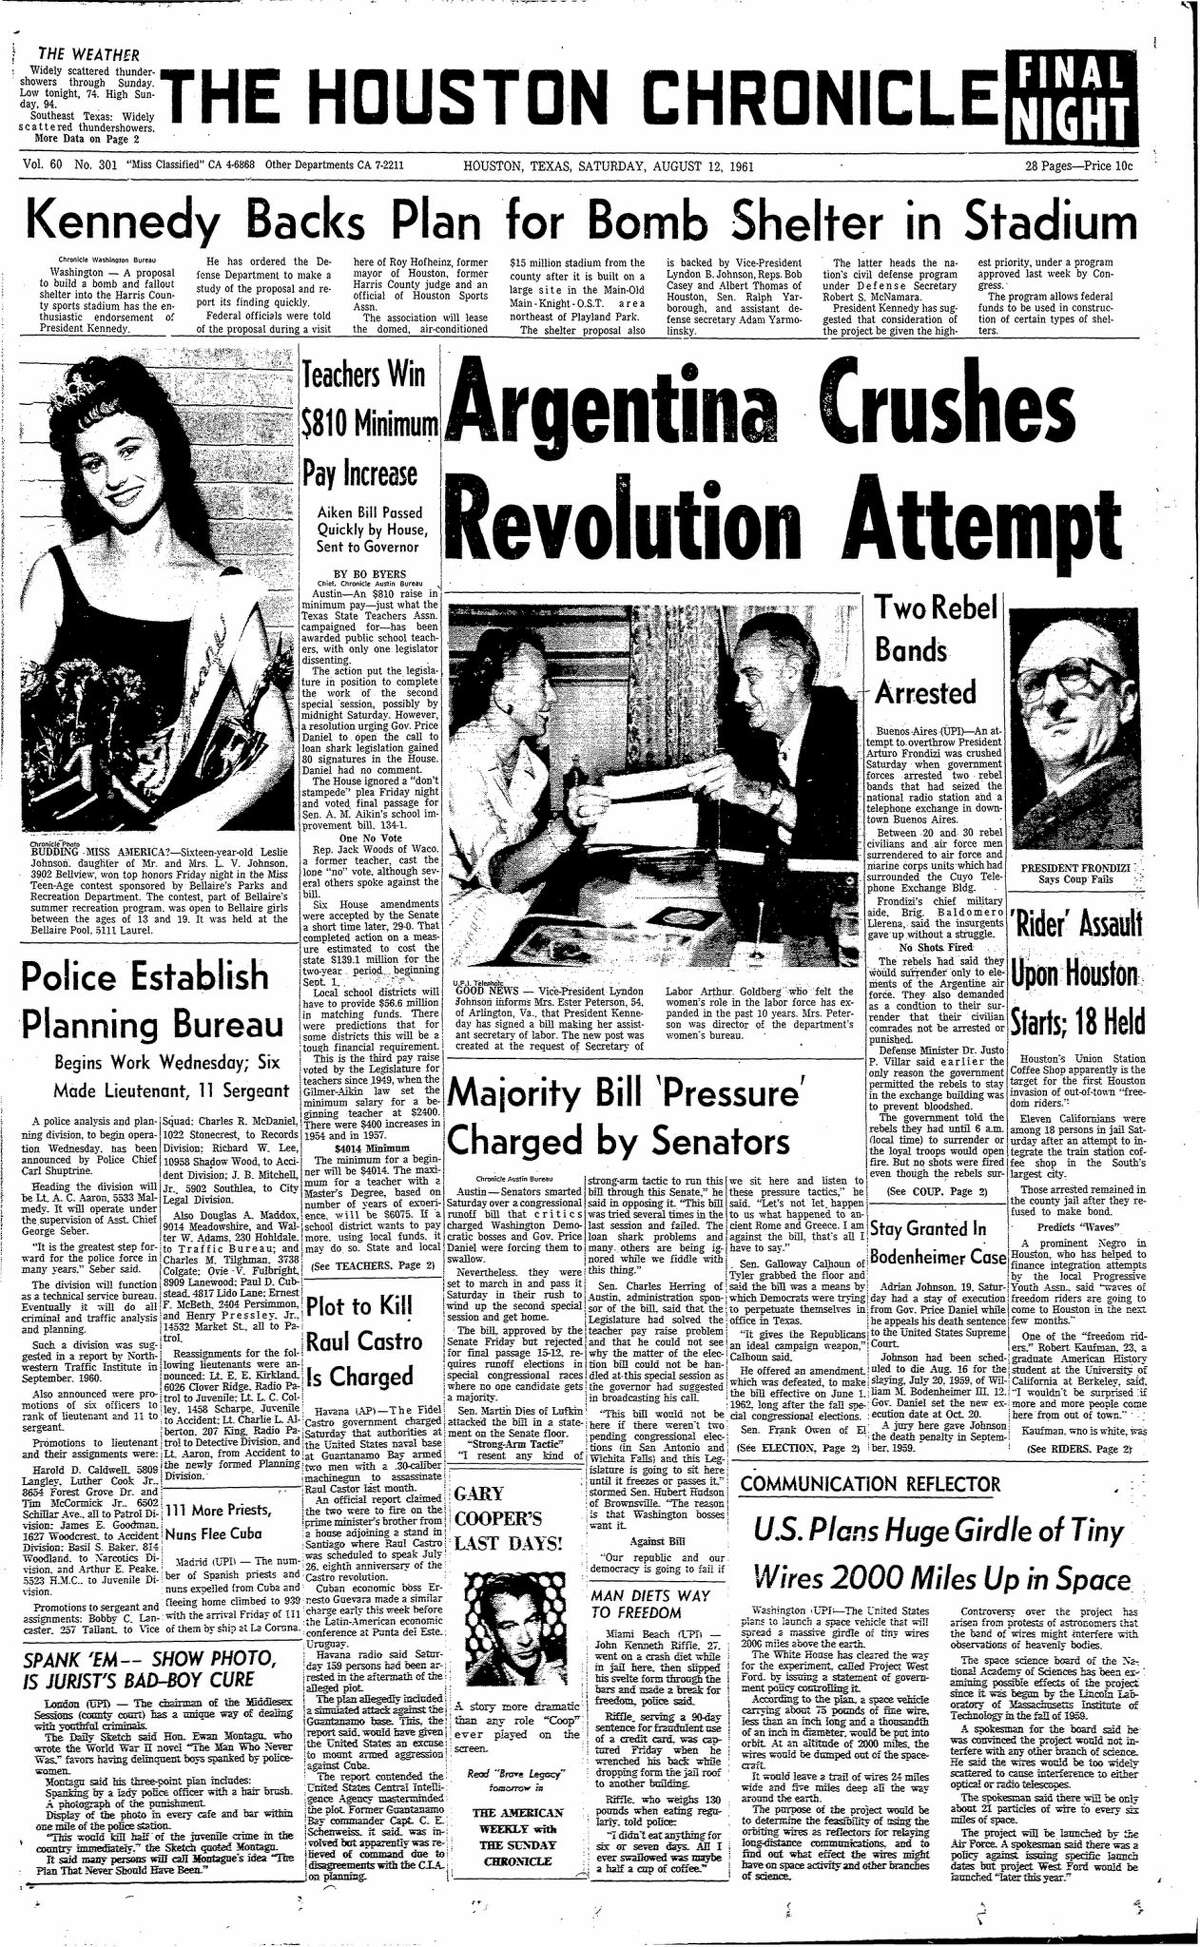 Houston Chronicle front page from Aug. 12, 1961.